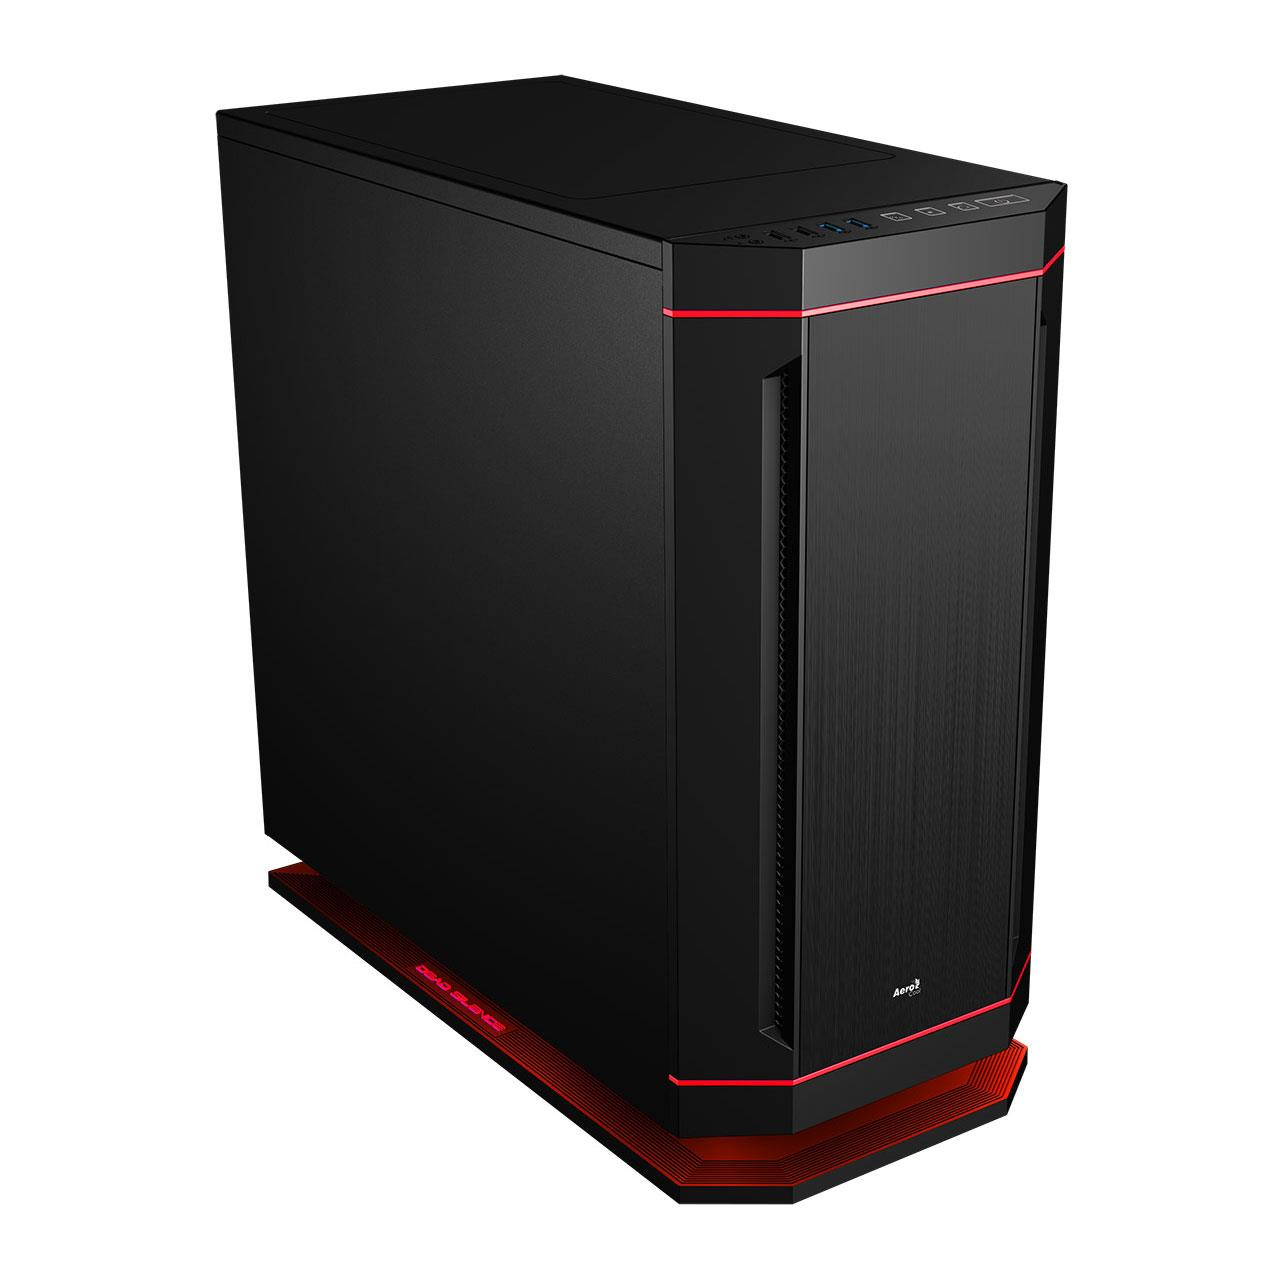 Aerocool DS230 Mid Tower Gaming Case